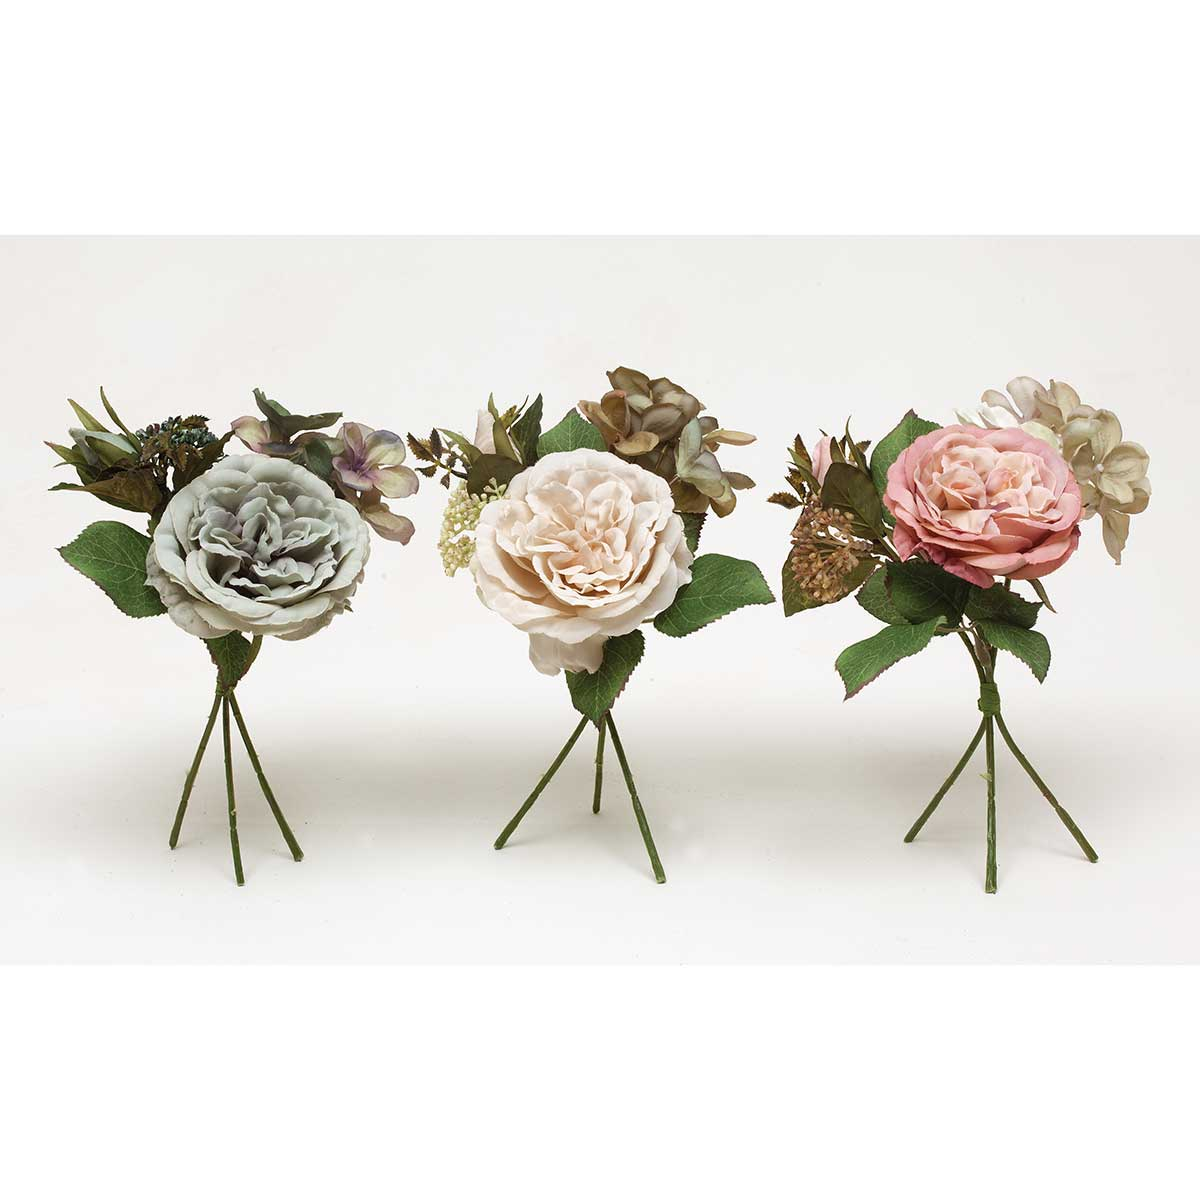 ROSE BOUQUET ASSORTMENT PACK 9 UNITS